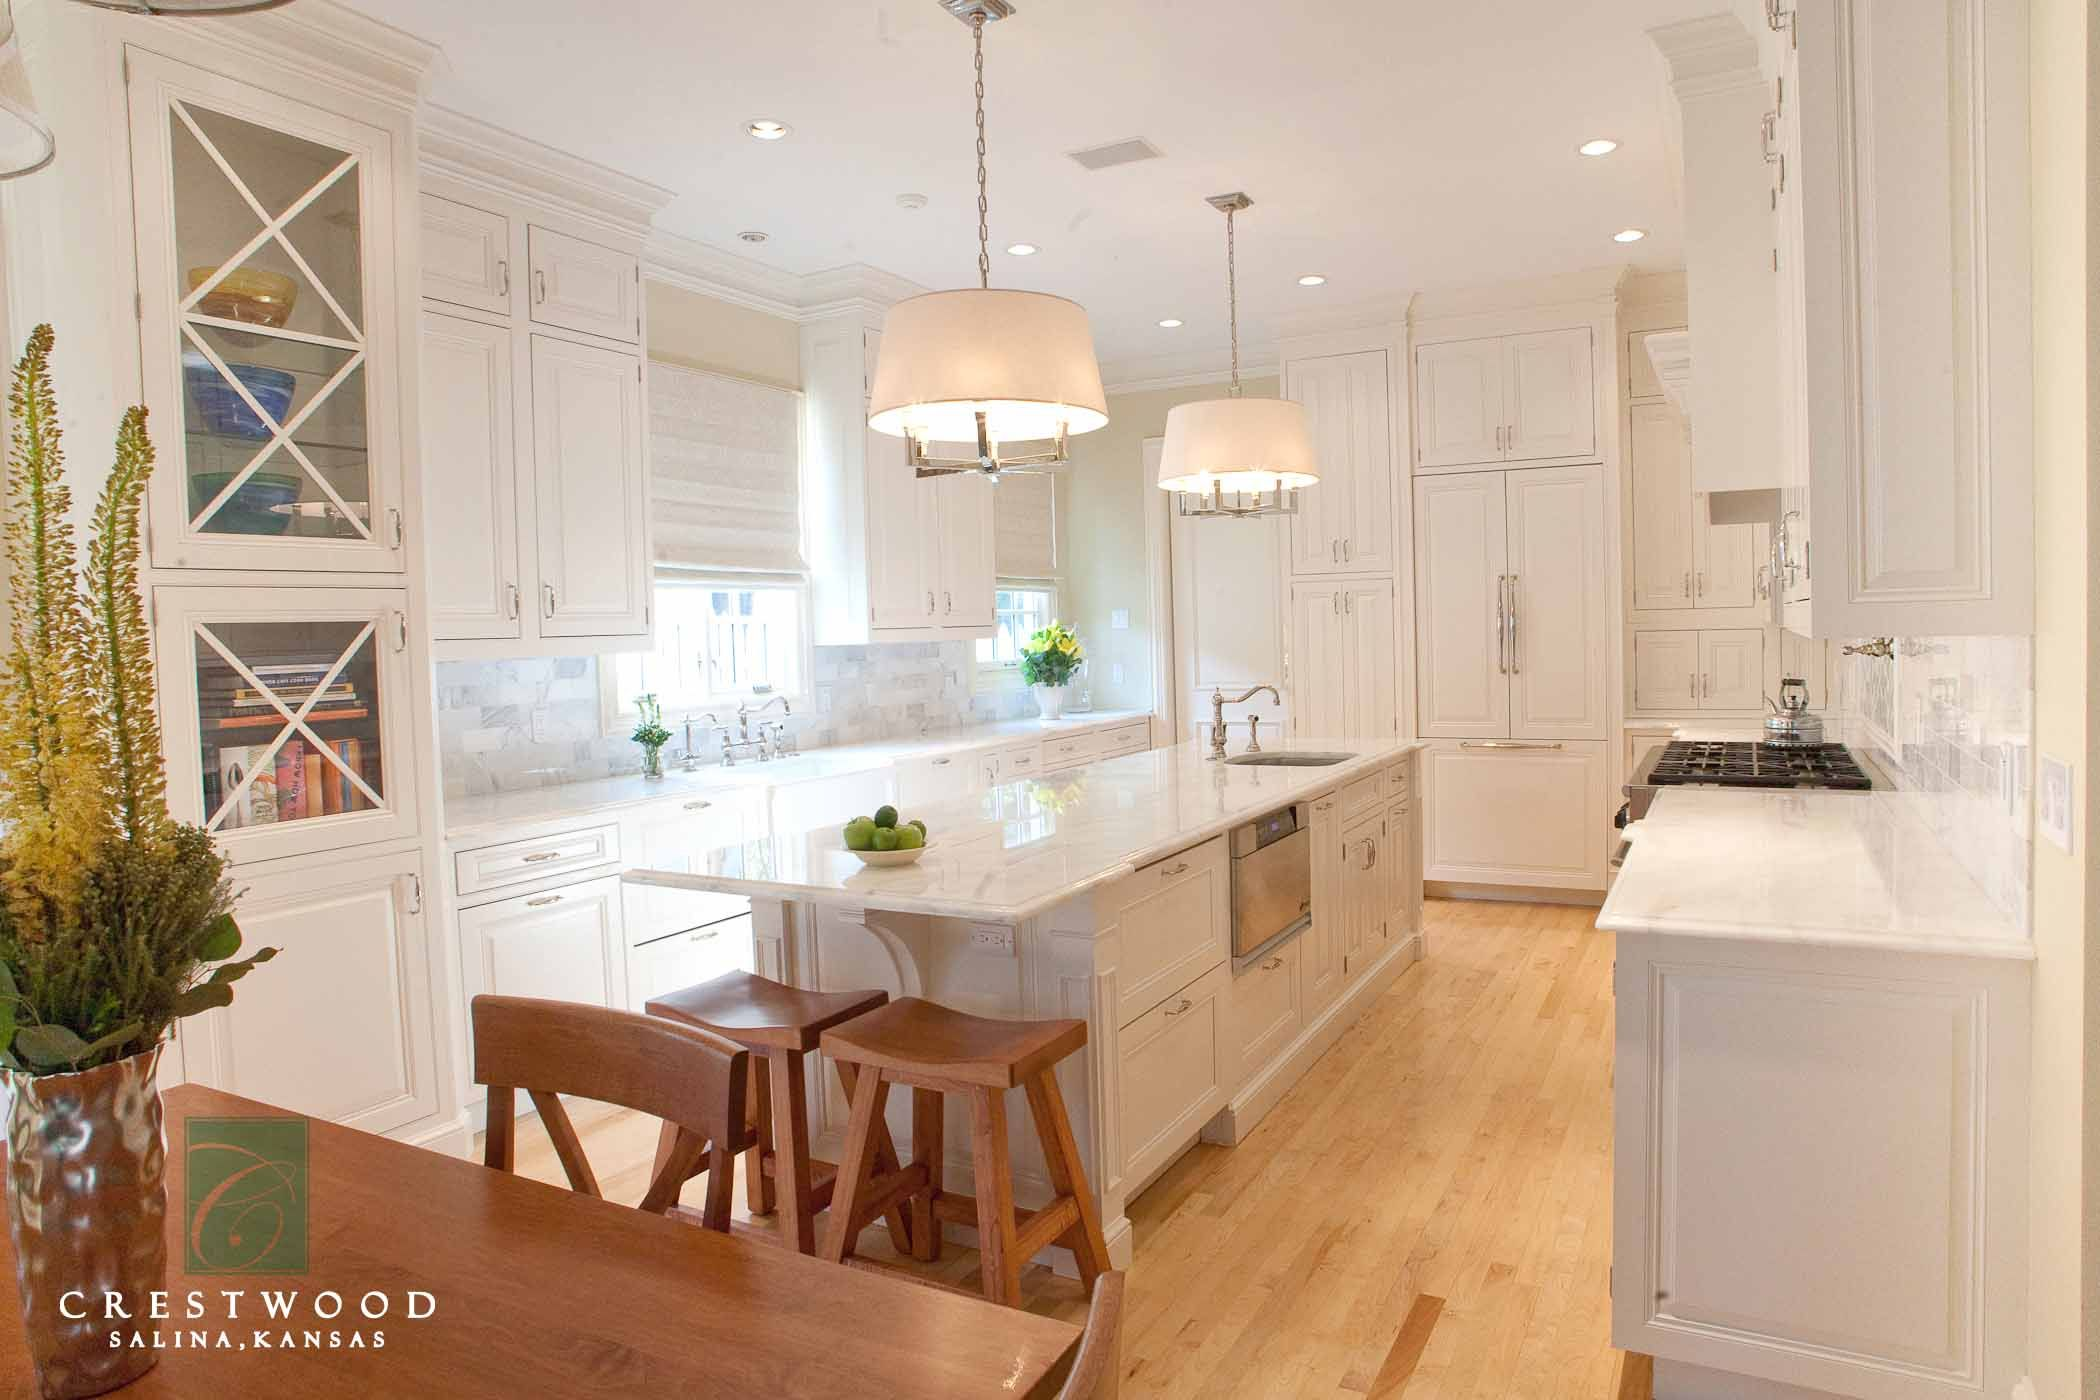 Blog | Denver Kitchen Design, Remodeling U0026 Cabinets | The Kitchen Showcase